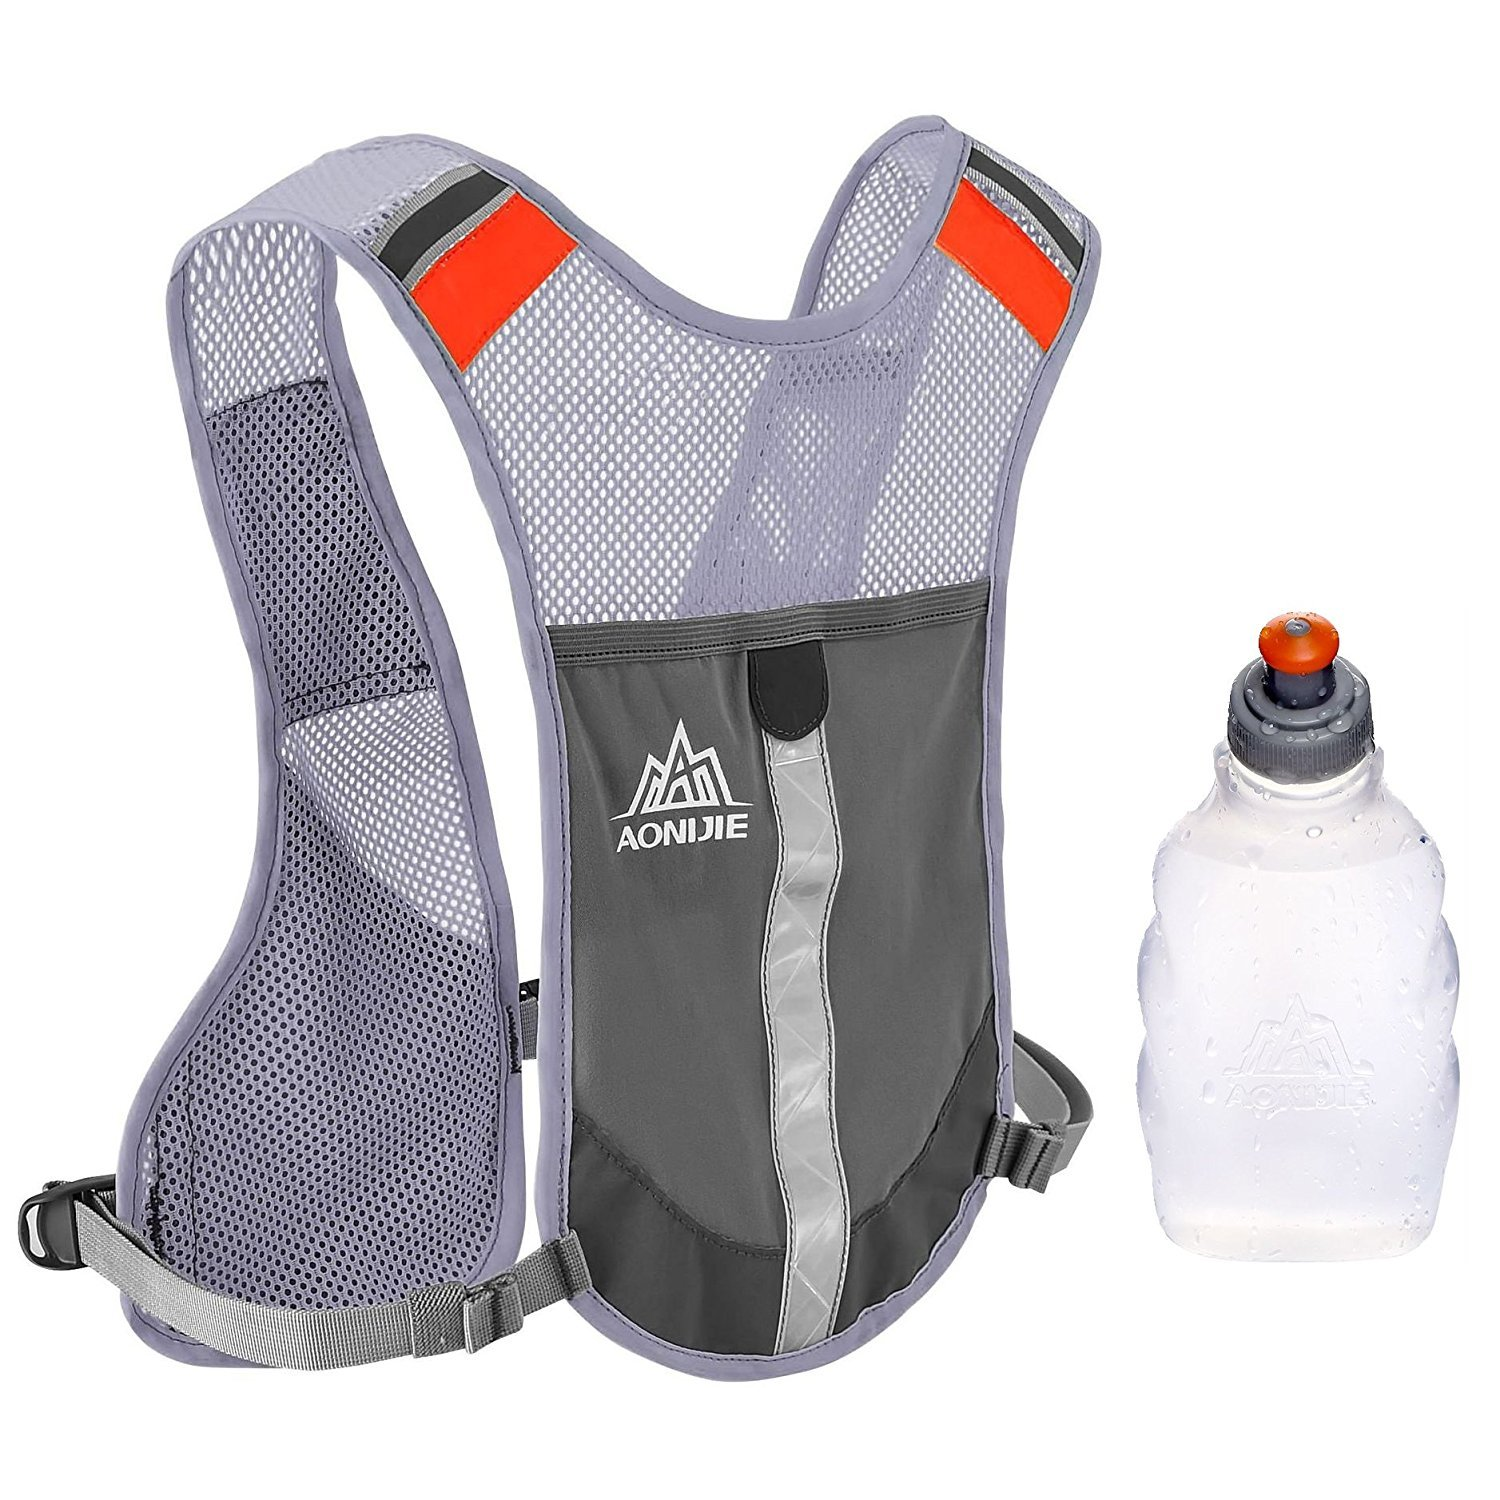 Premium Reflective Vest Give Sport Water Bottle as Gift for Running Cycling Clothes for Women Men Safety Gear with Pocket 3M Scotchlite with Reflective High Visibility for (Grey)